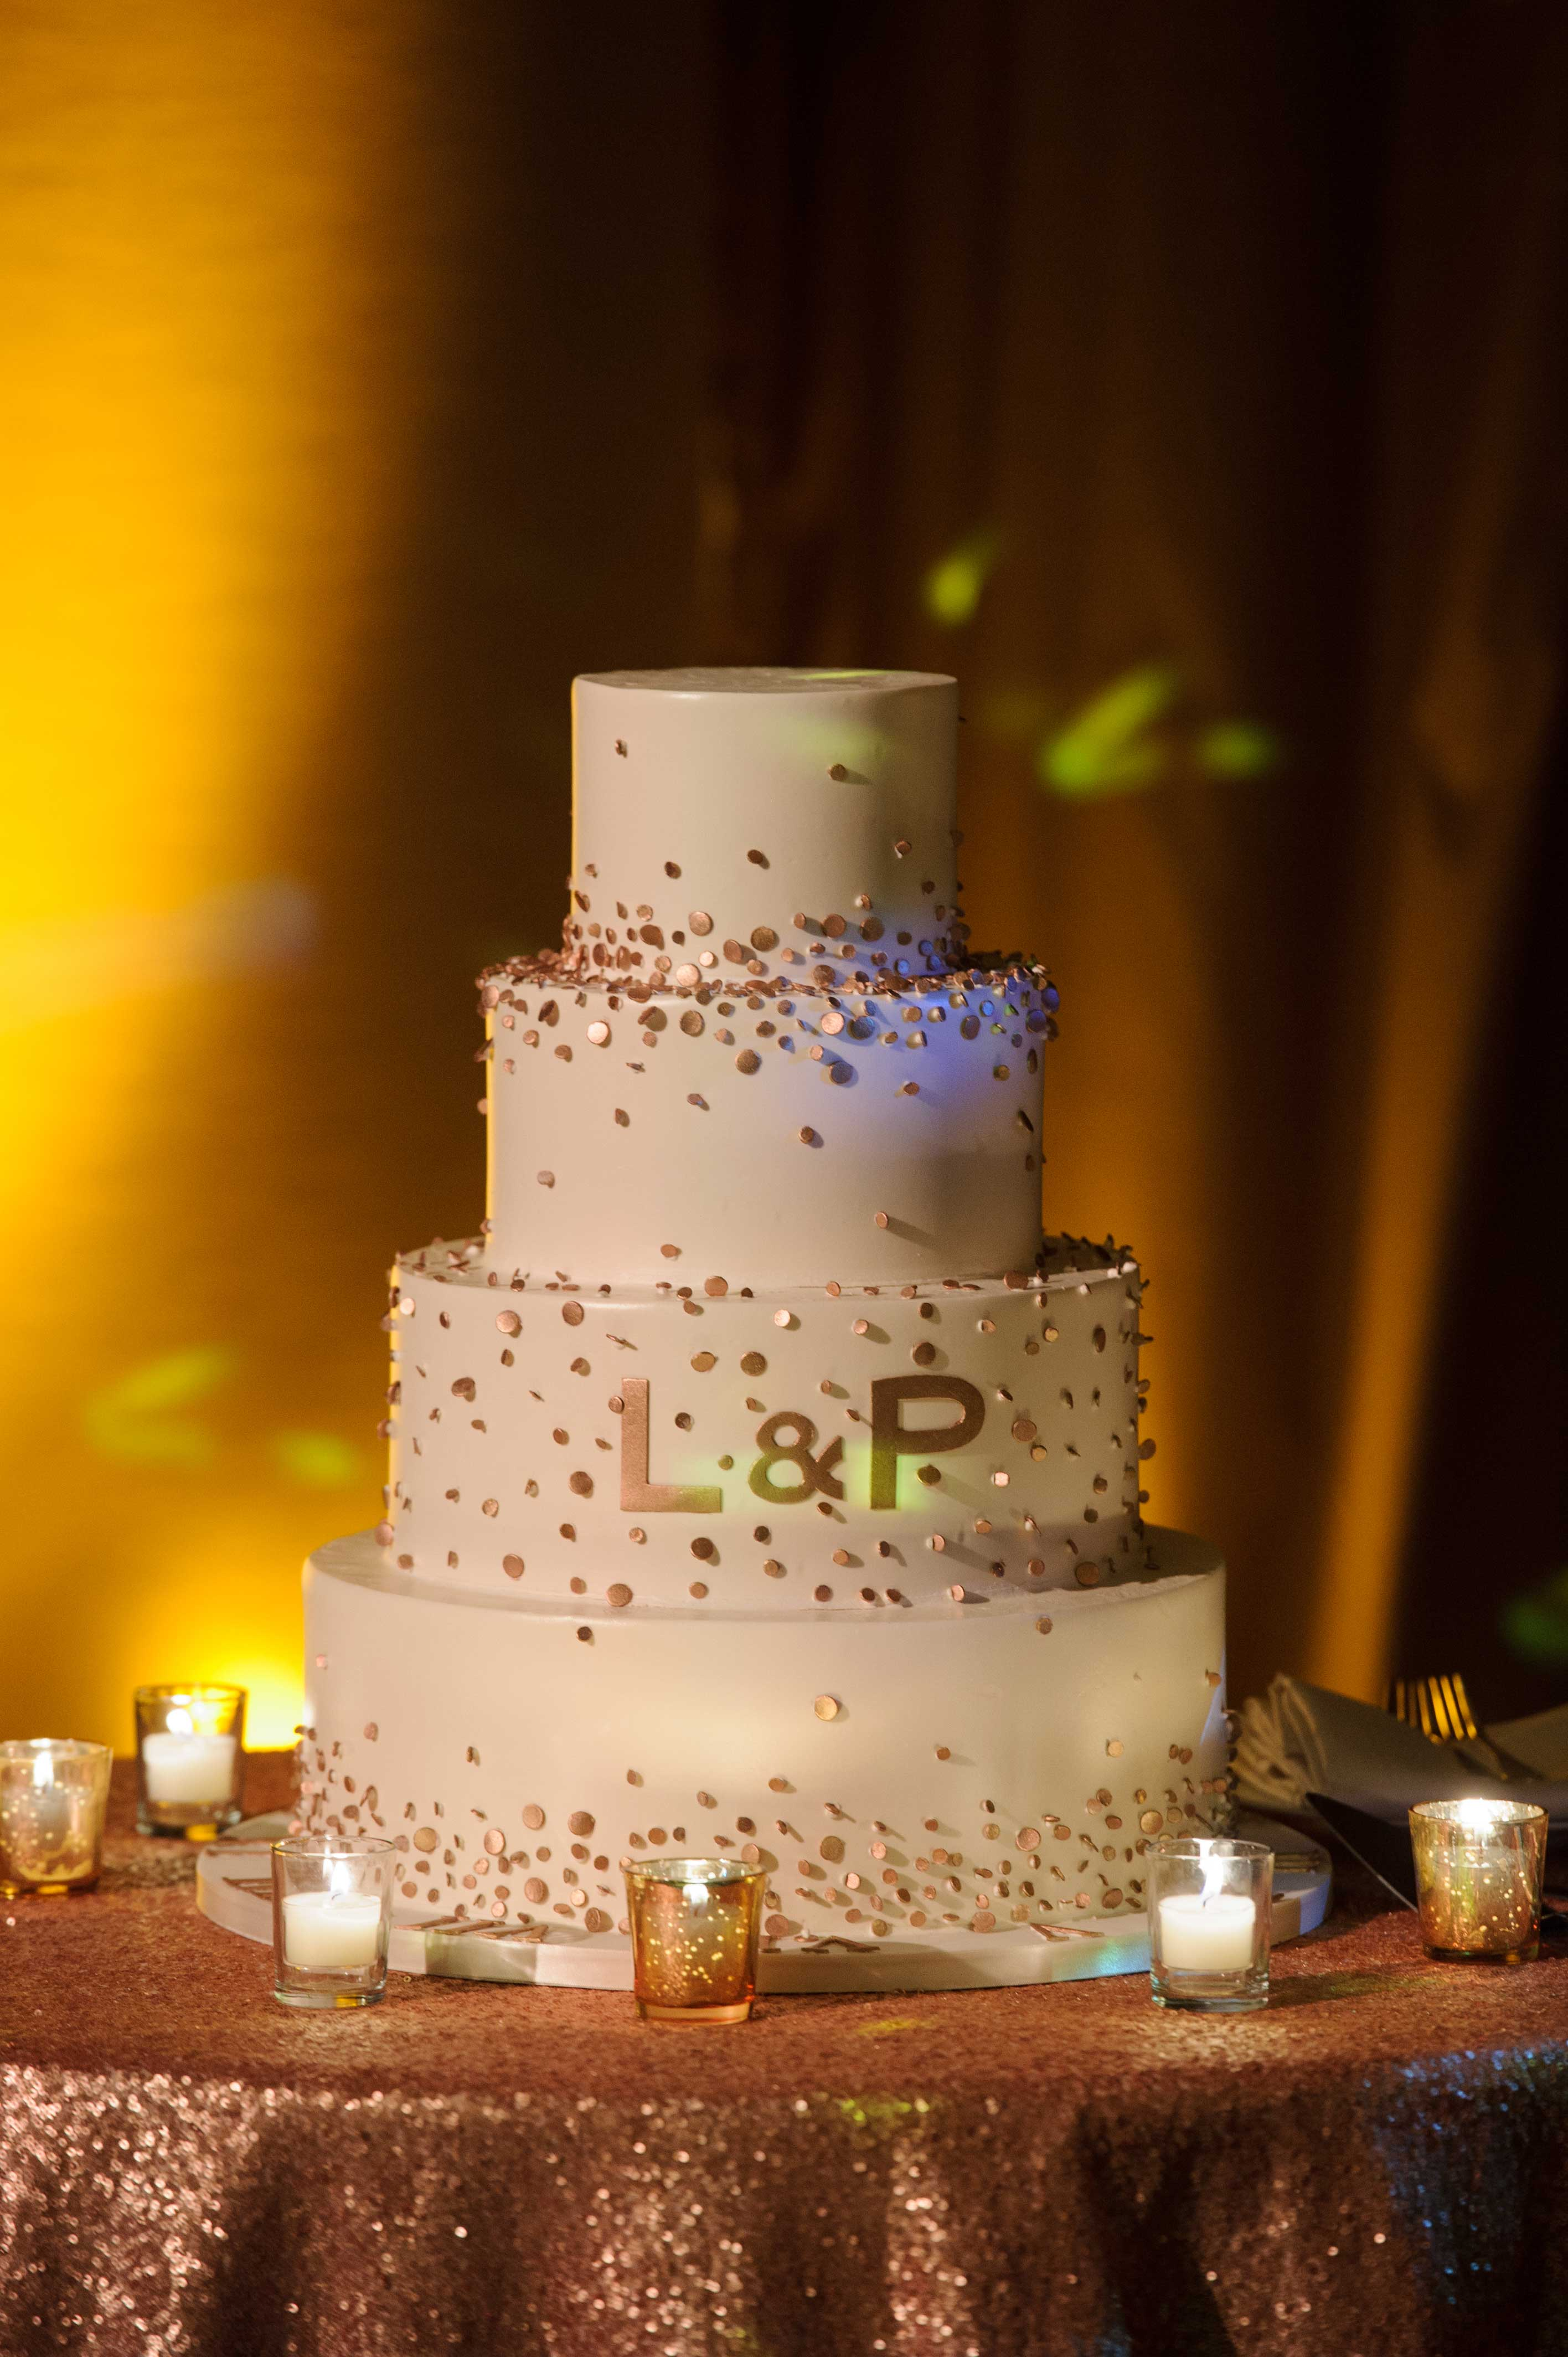 wedding cake with bride and groom's initials